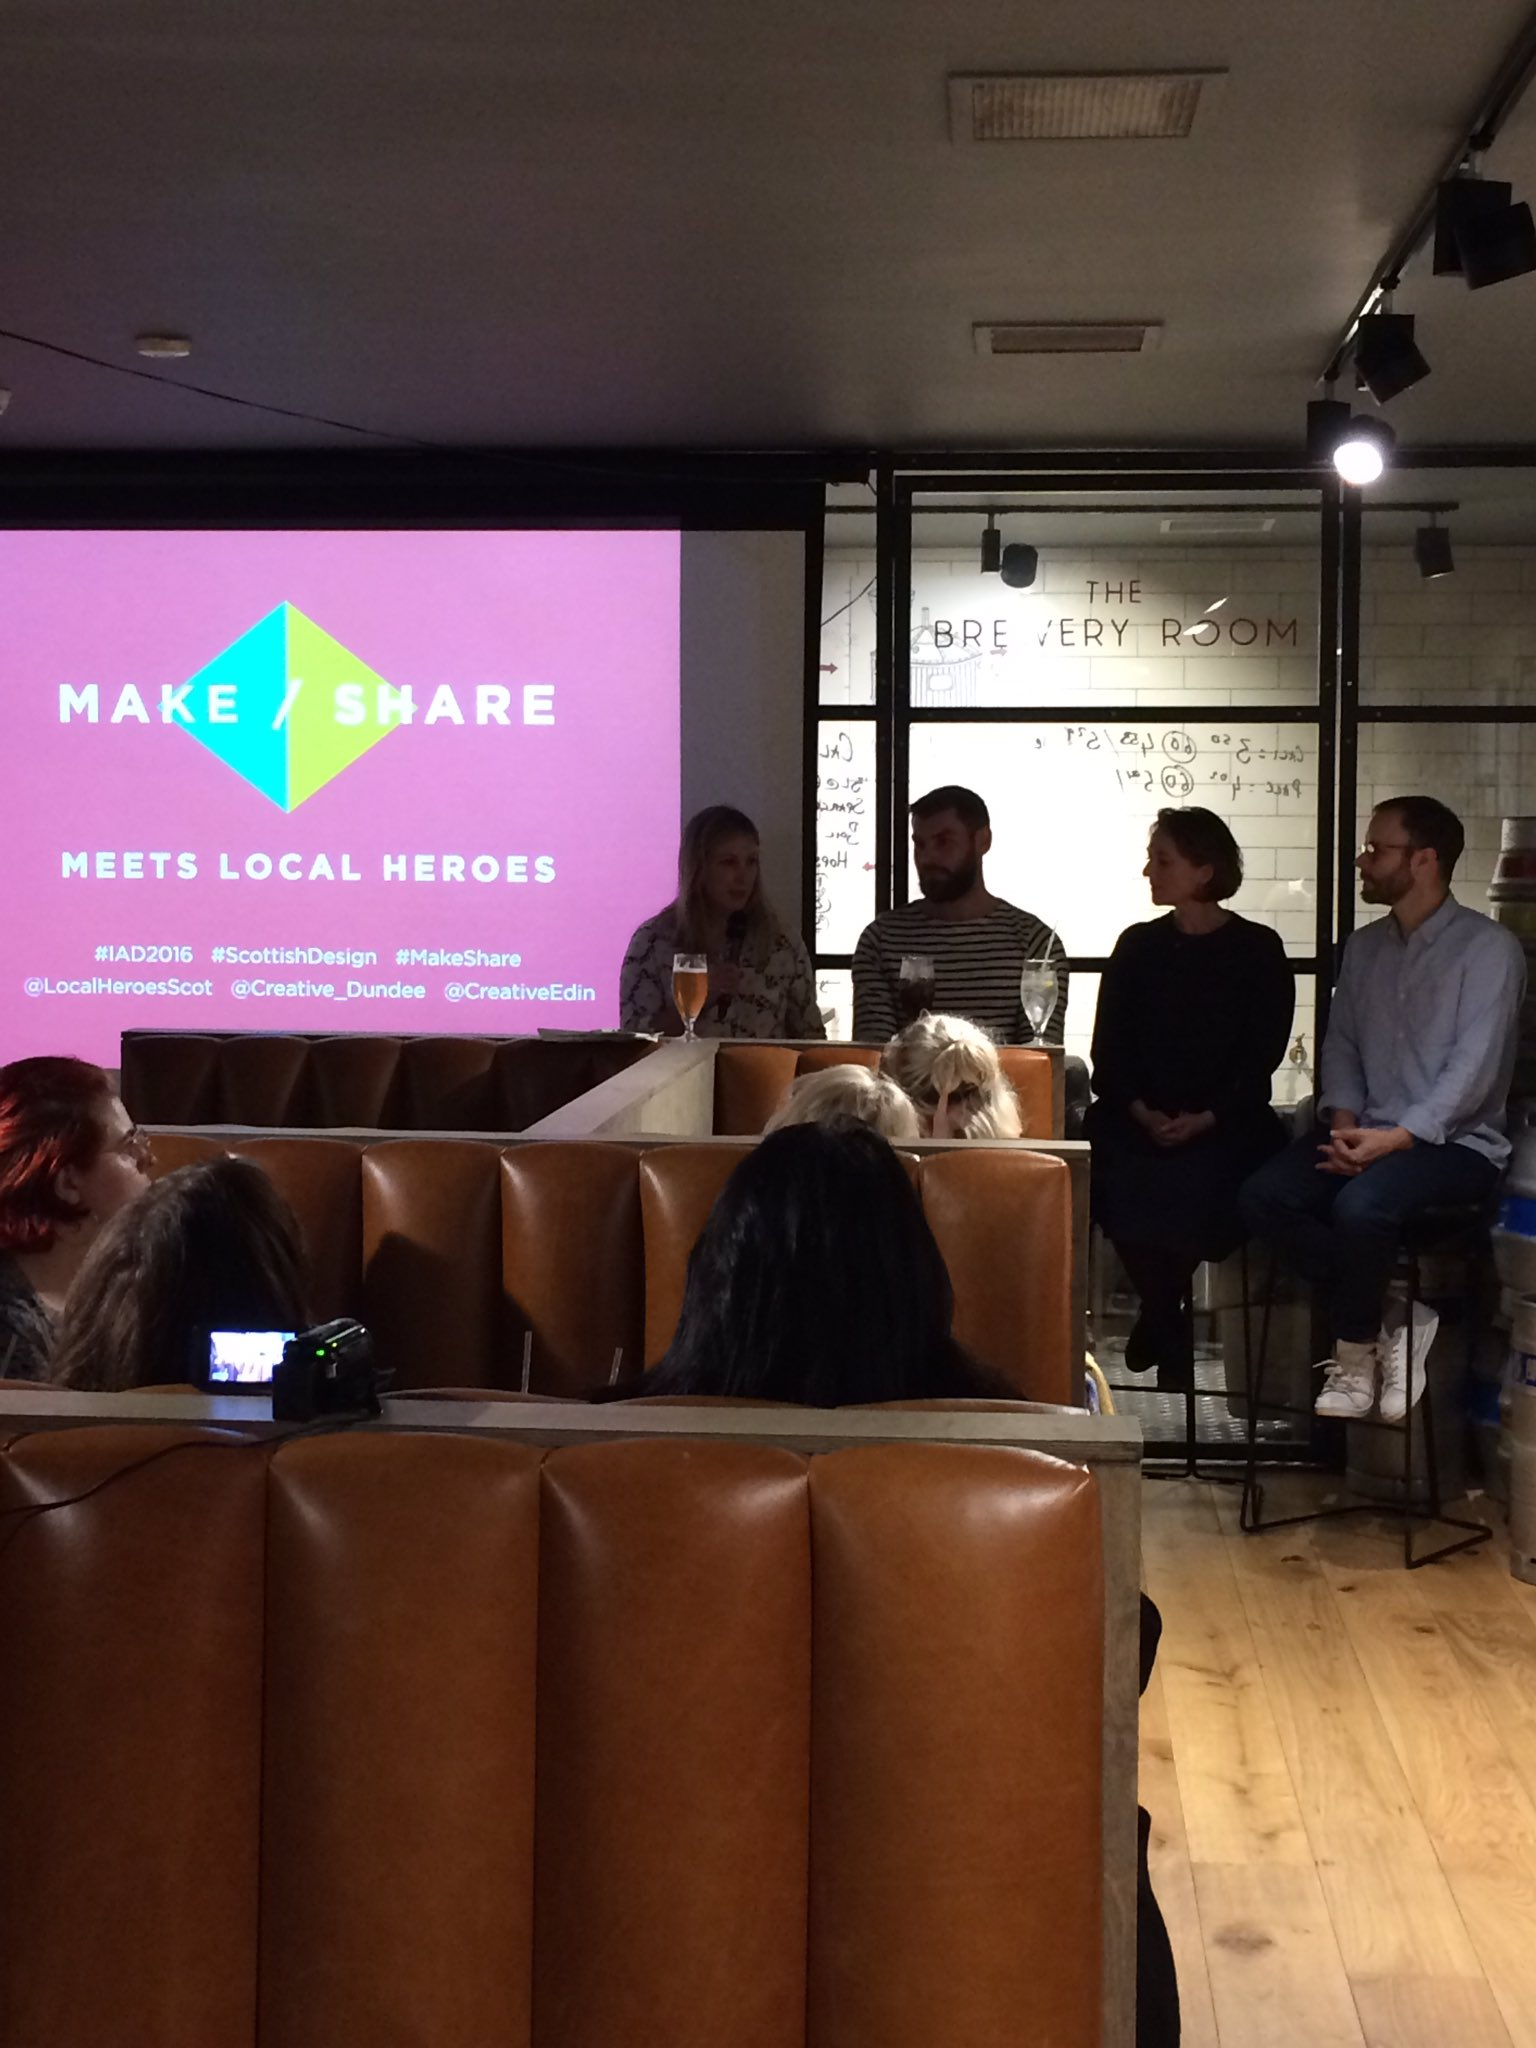 Now it's time for our panel discussion with @StaceyHunterEDI, @LocalHeroesScot @TrakkeBasecamp, @jennie_patt & @tompigeon #makeshare https://t.co/AH6VXZS0zG